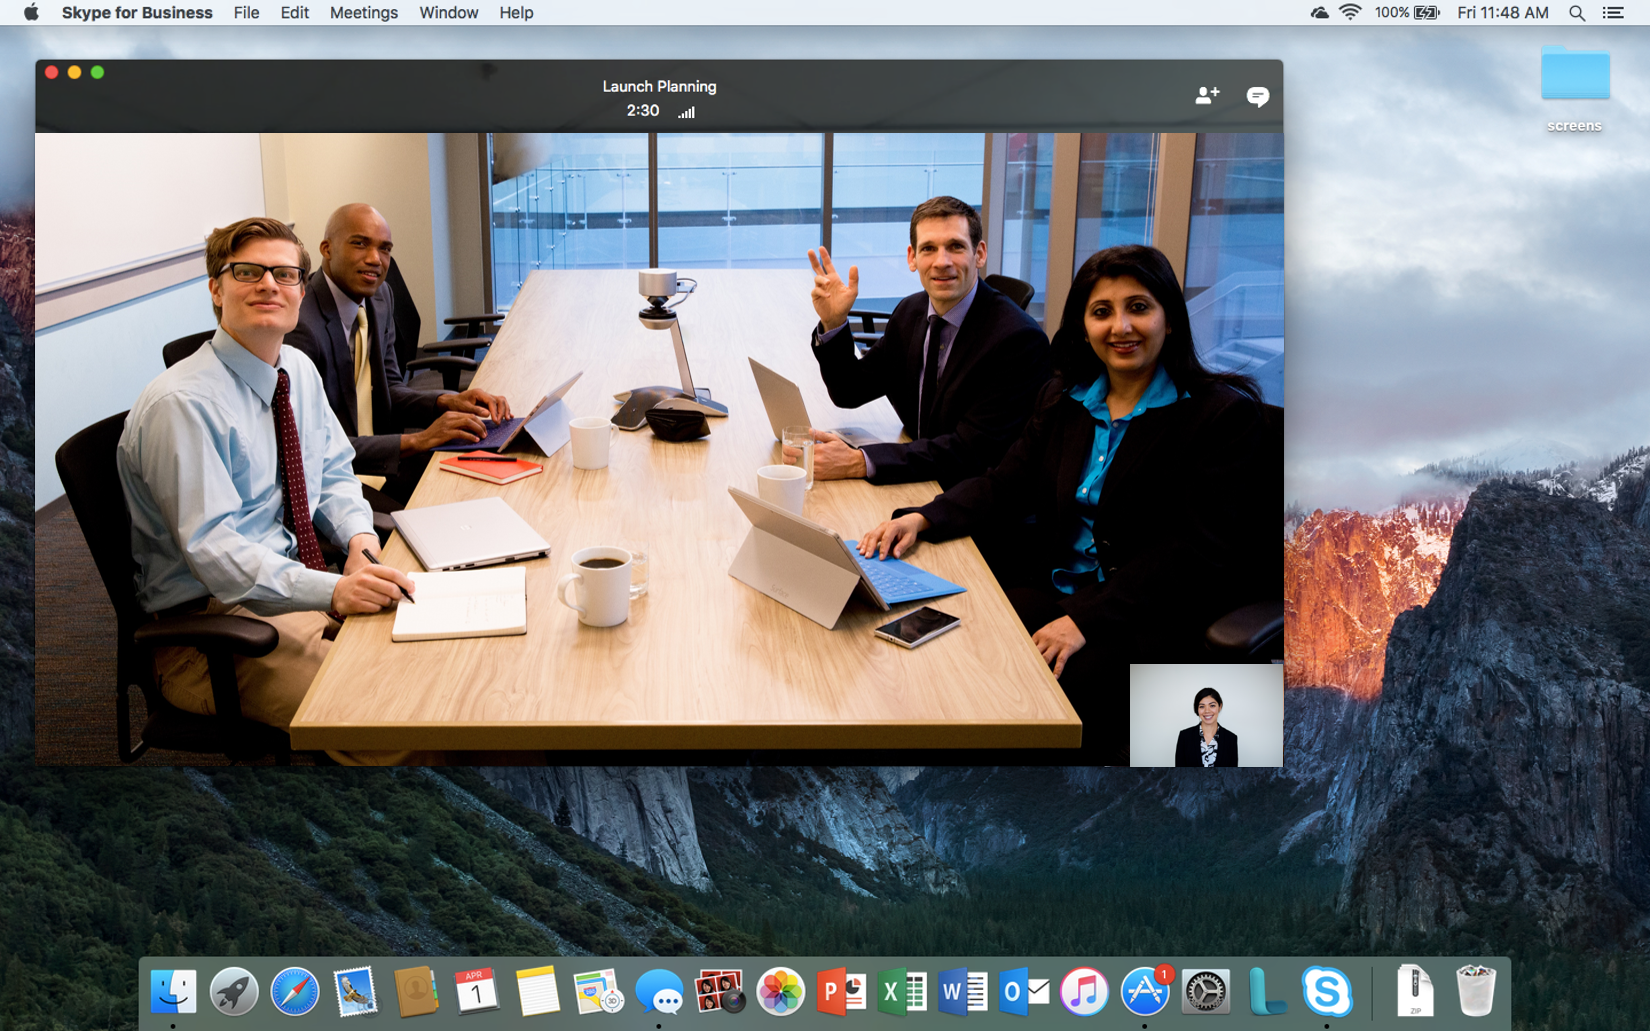 First step to the all new Skype for Business for Mac